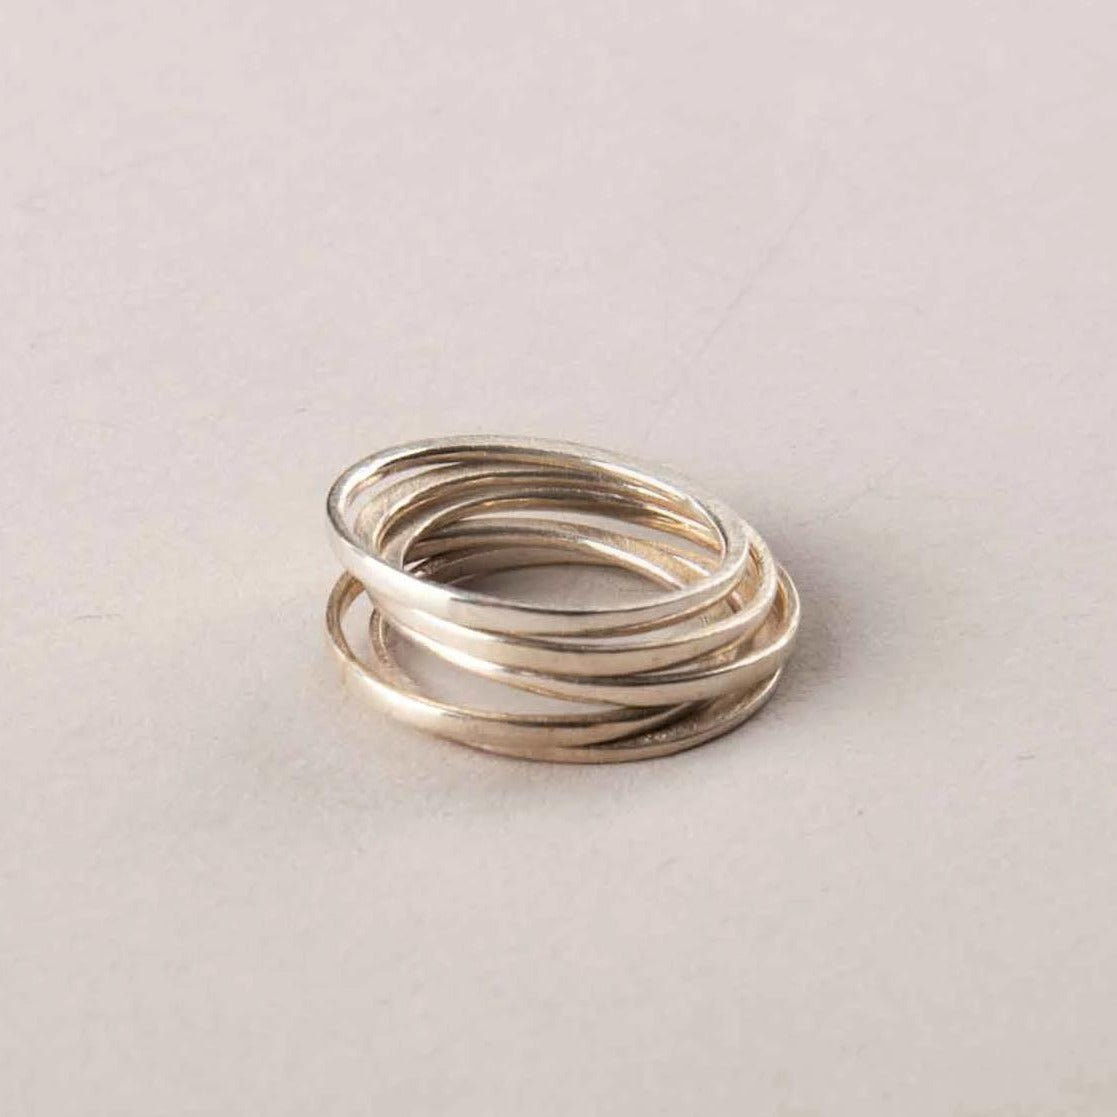 PERPENDICULAR FORGED STACK BAND